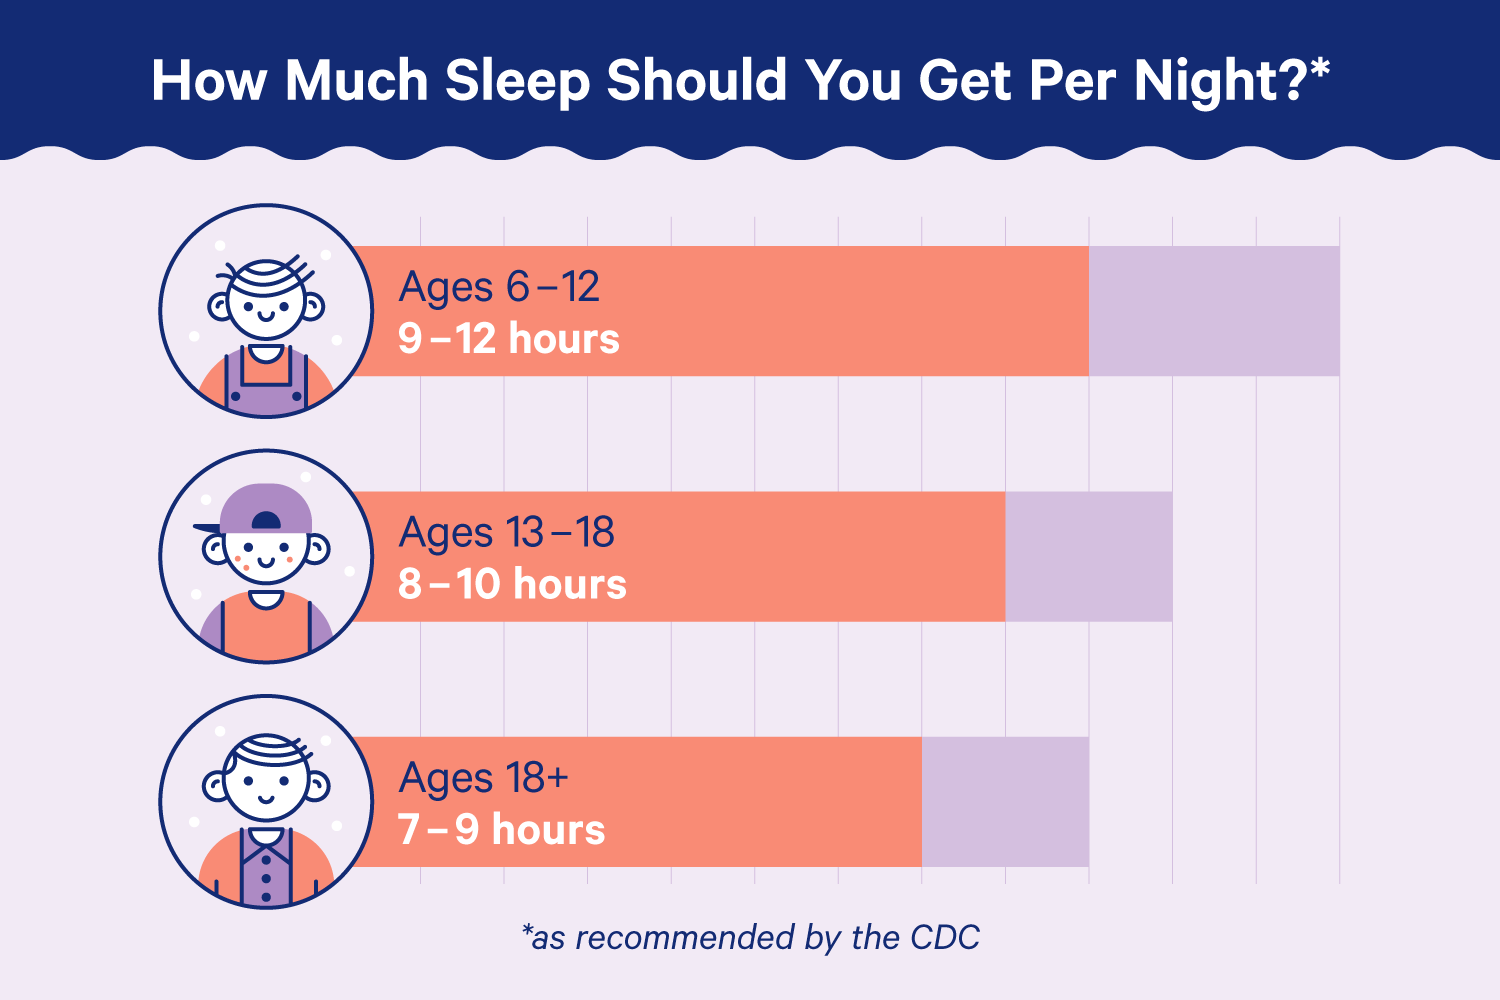 A diagram showing sleep requirement by age. Inforamtion is as follows: Ages 6-12 should get 9-12 hours of sleep, ages 13-18 should get 8-10 hours of sleep, and ages 18 or older should get 7-9 hours of sleep.